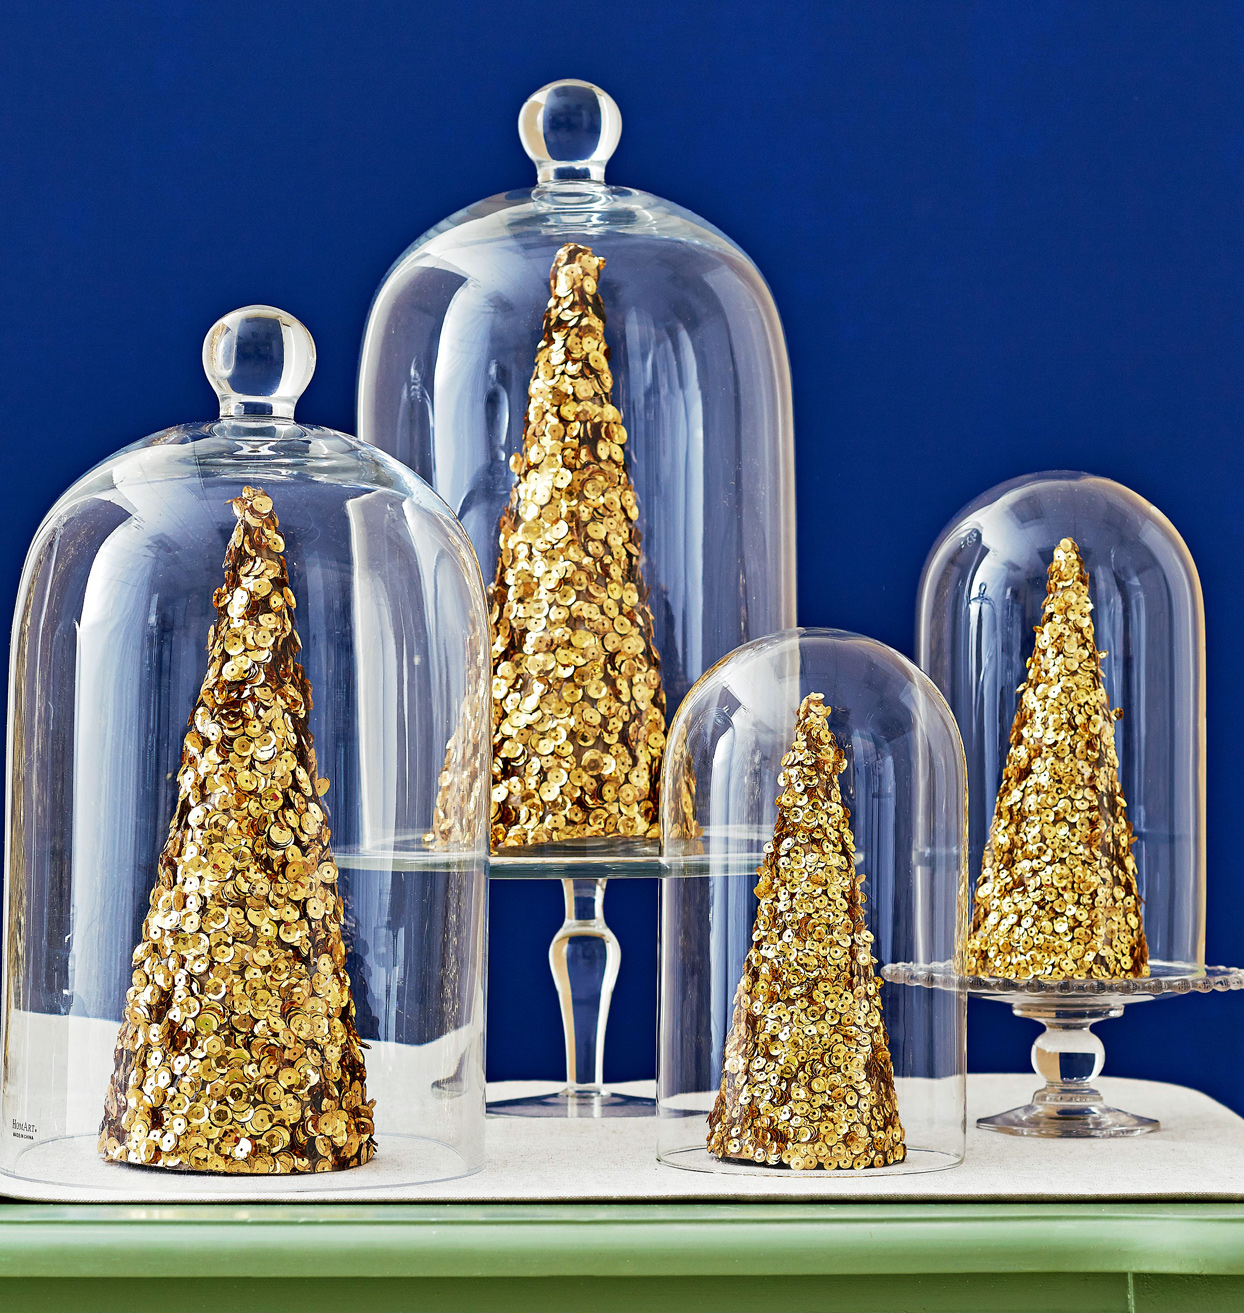 gold-dusted trees in glass